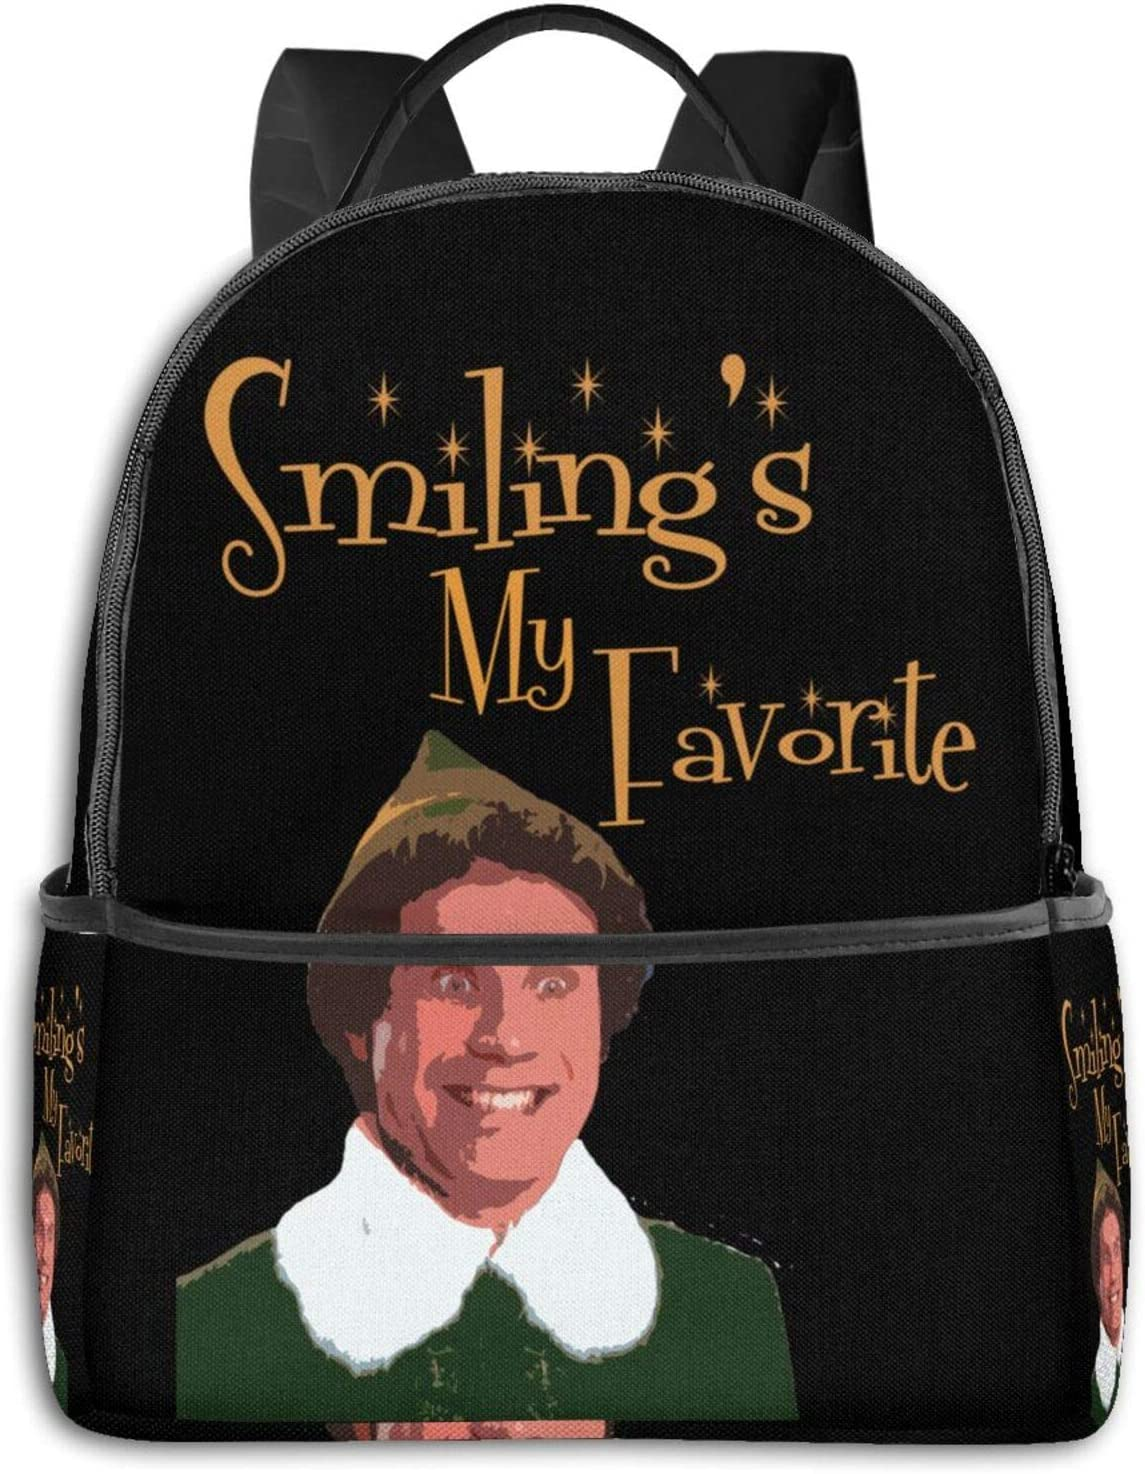 Buddy The Elf - Smiling My Favorite Pullover Hoodie Student School Bag School Cycling Leisure Travel Camping Outdoor Backpack